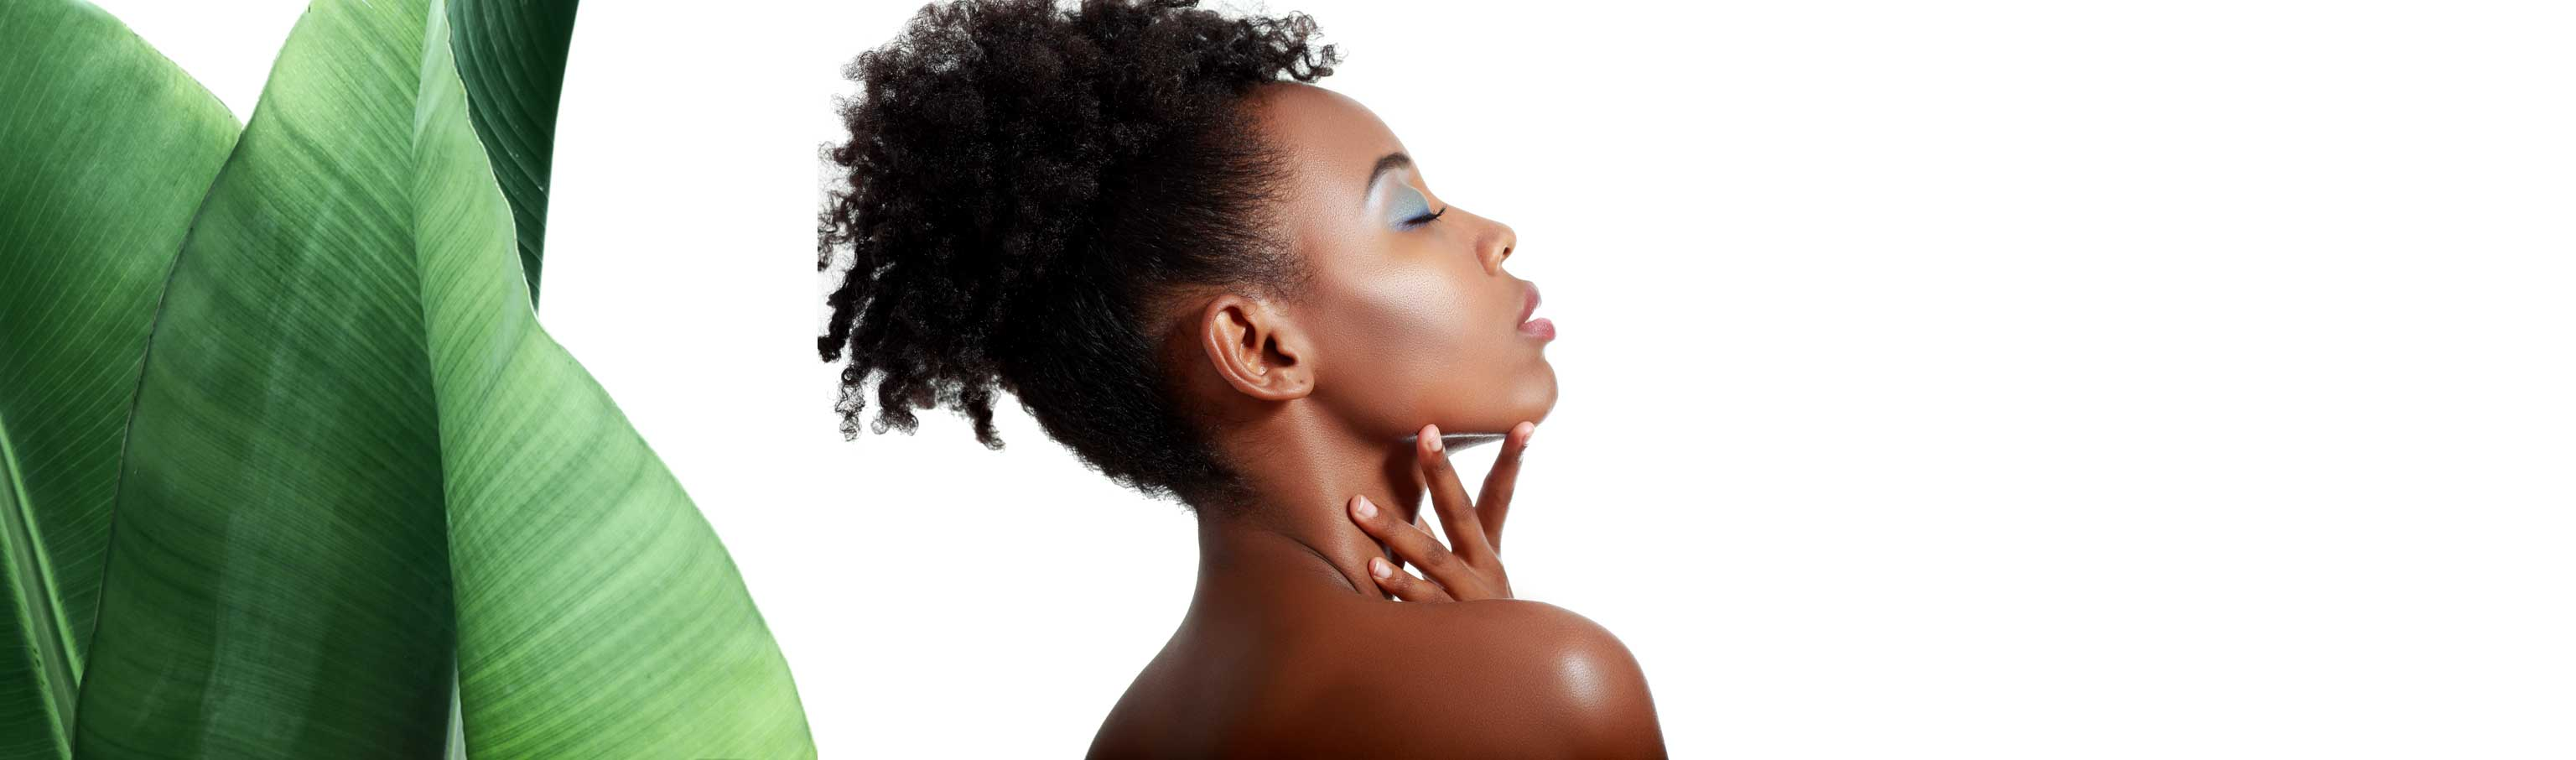 Black-Owned Beauty Essentials HBTV Series Collection     Save Categories Beauty Essentials HBTV Series Collection Hair Care Skin Care Makeup & Cosmetics Spa & Relaxation Personal Care Fragrances